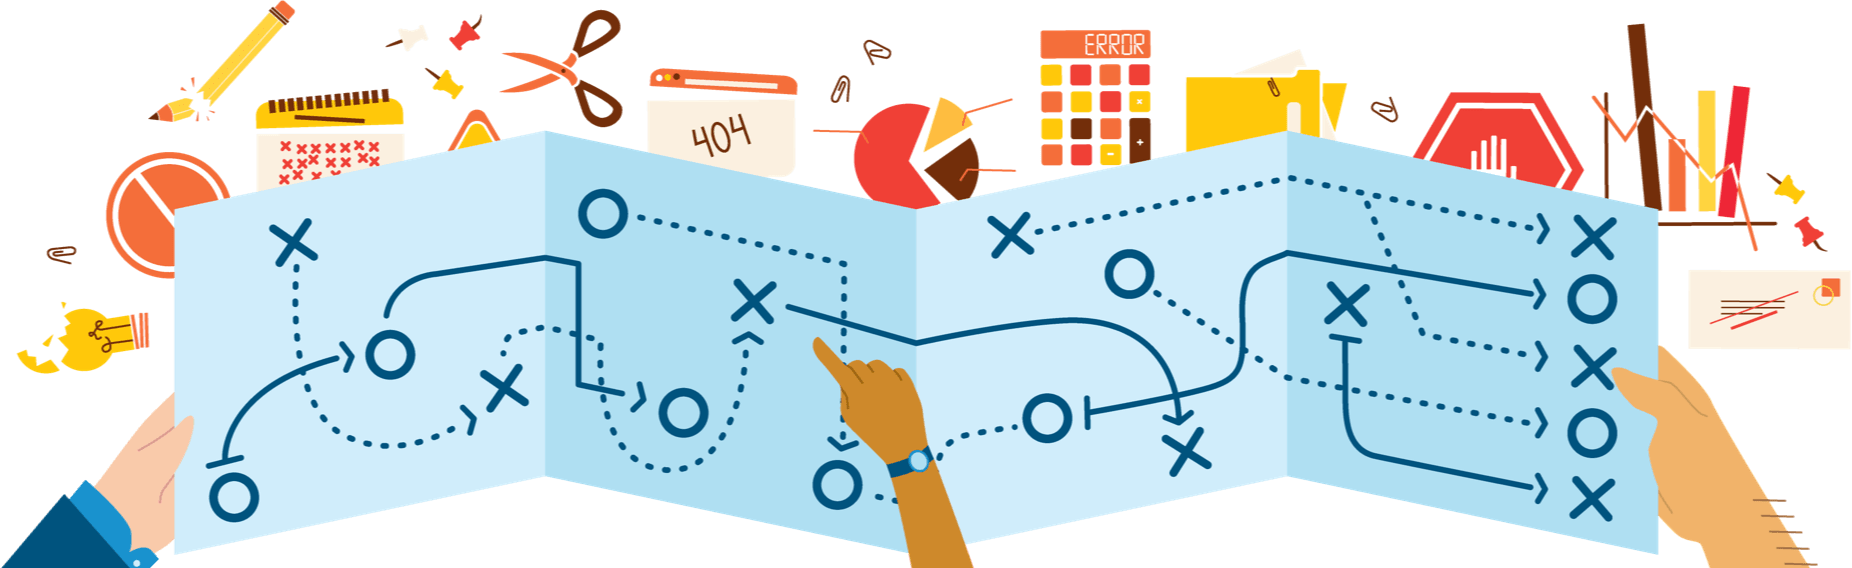 Use the Atlassian Team Playbook to assess your team's health, build muscle, and track progress. Because dysfunctional teams suck.